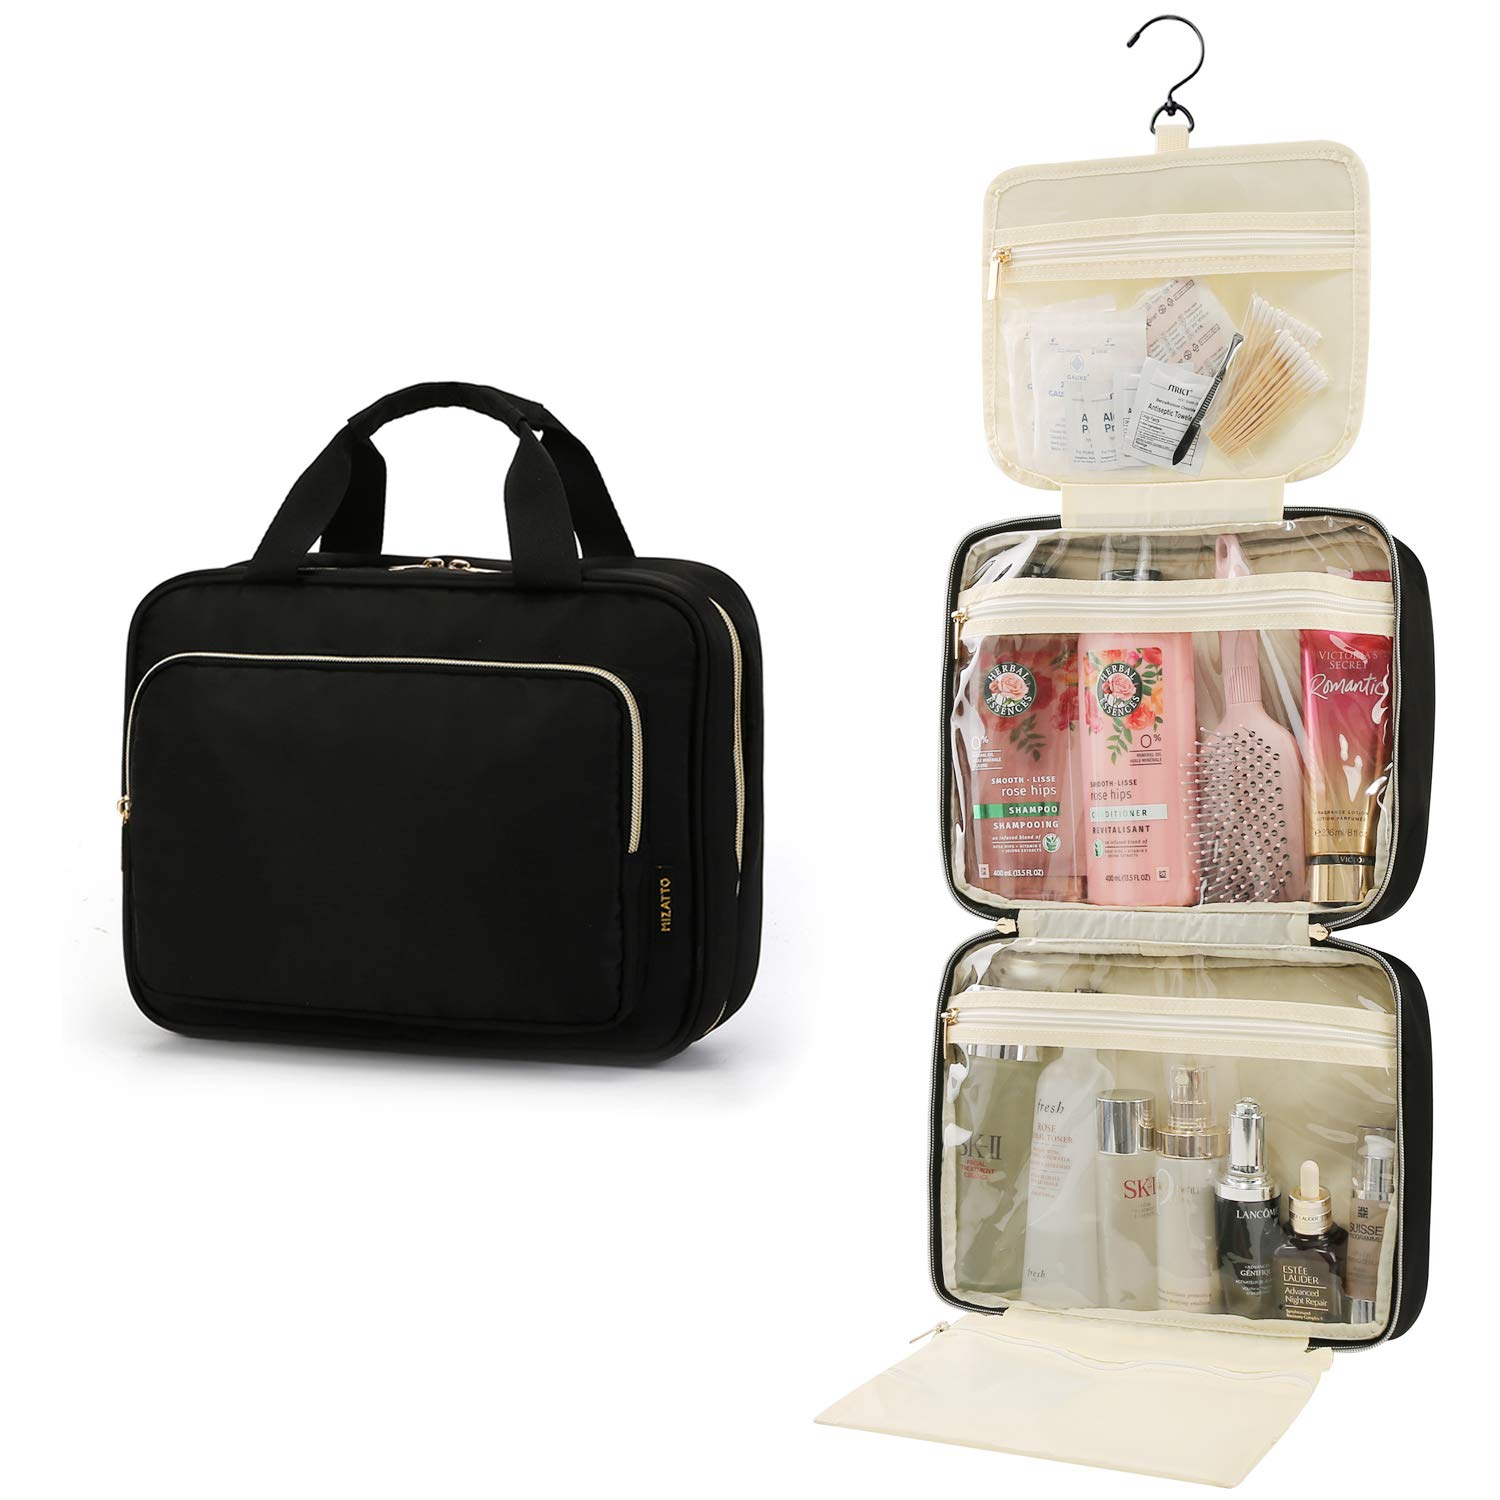 Large Toiletry Bag Travel Bag with Hanging Hook,Water-resistant Makeup Cosmetic Bag Travel Organizer for Accessories,Shampoo,Full Sized Container,Toiletries (Black)